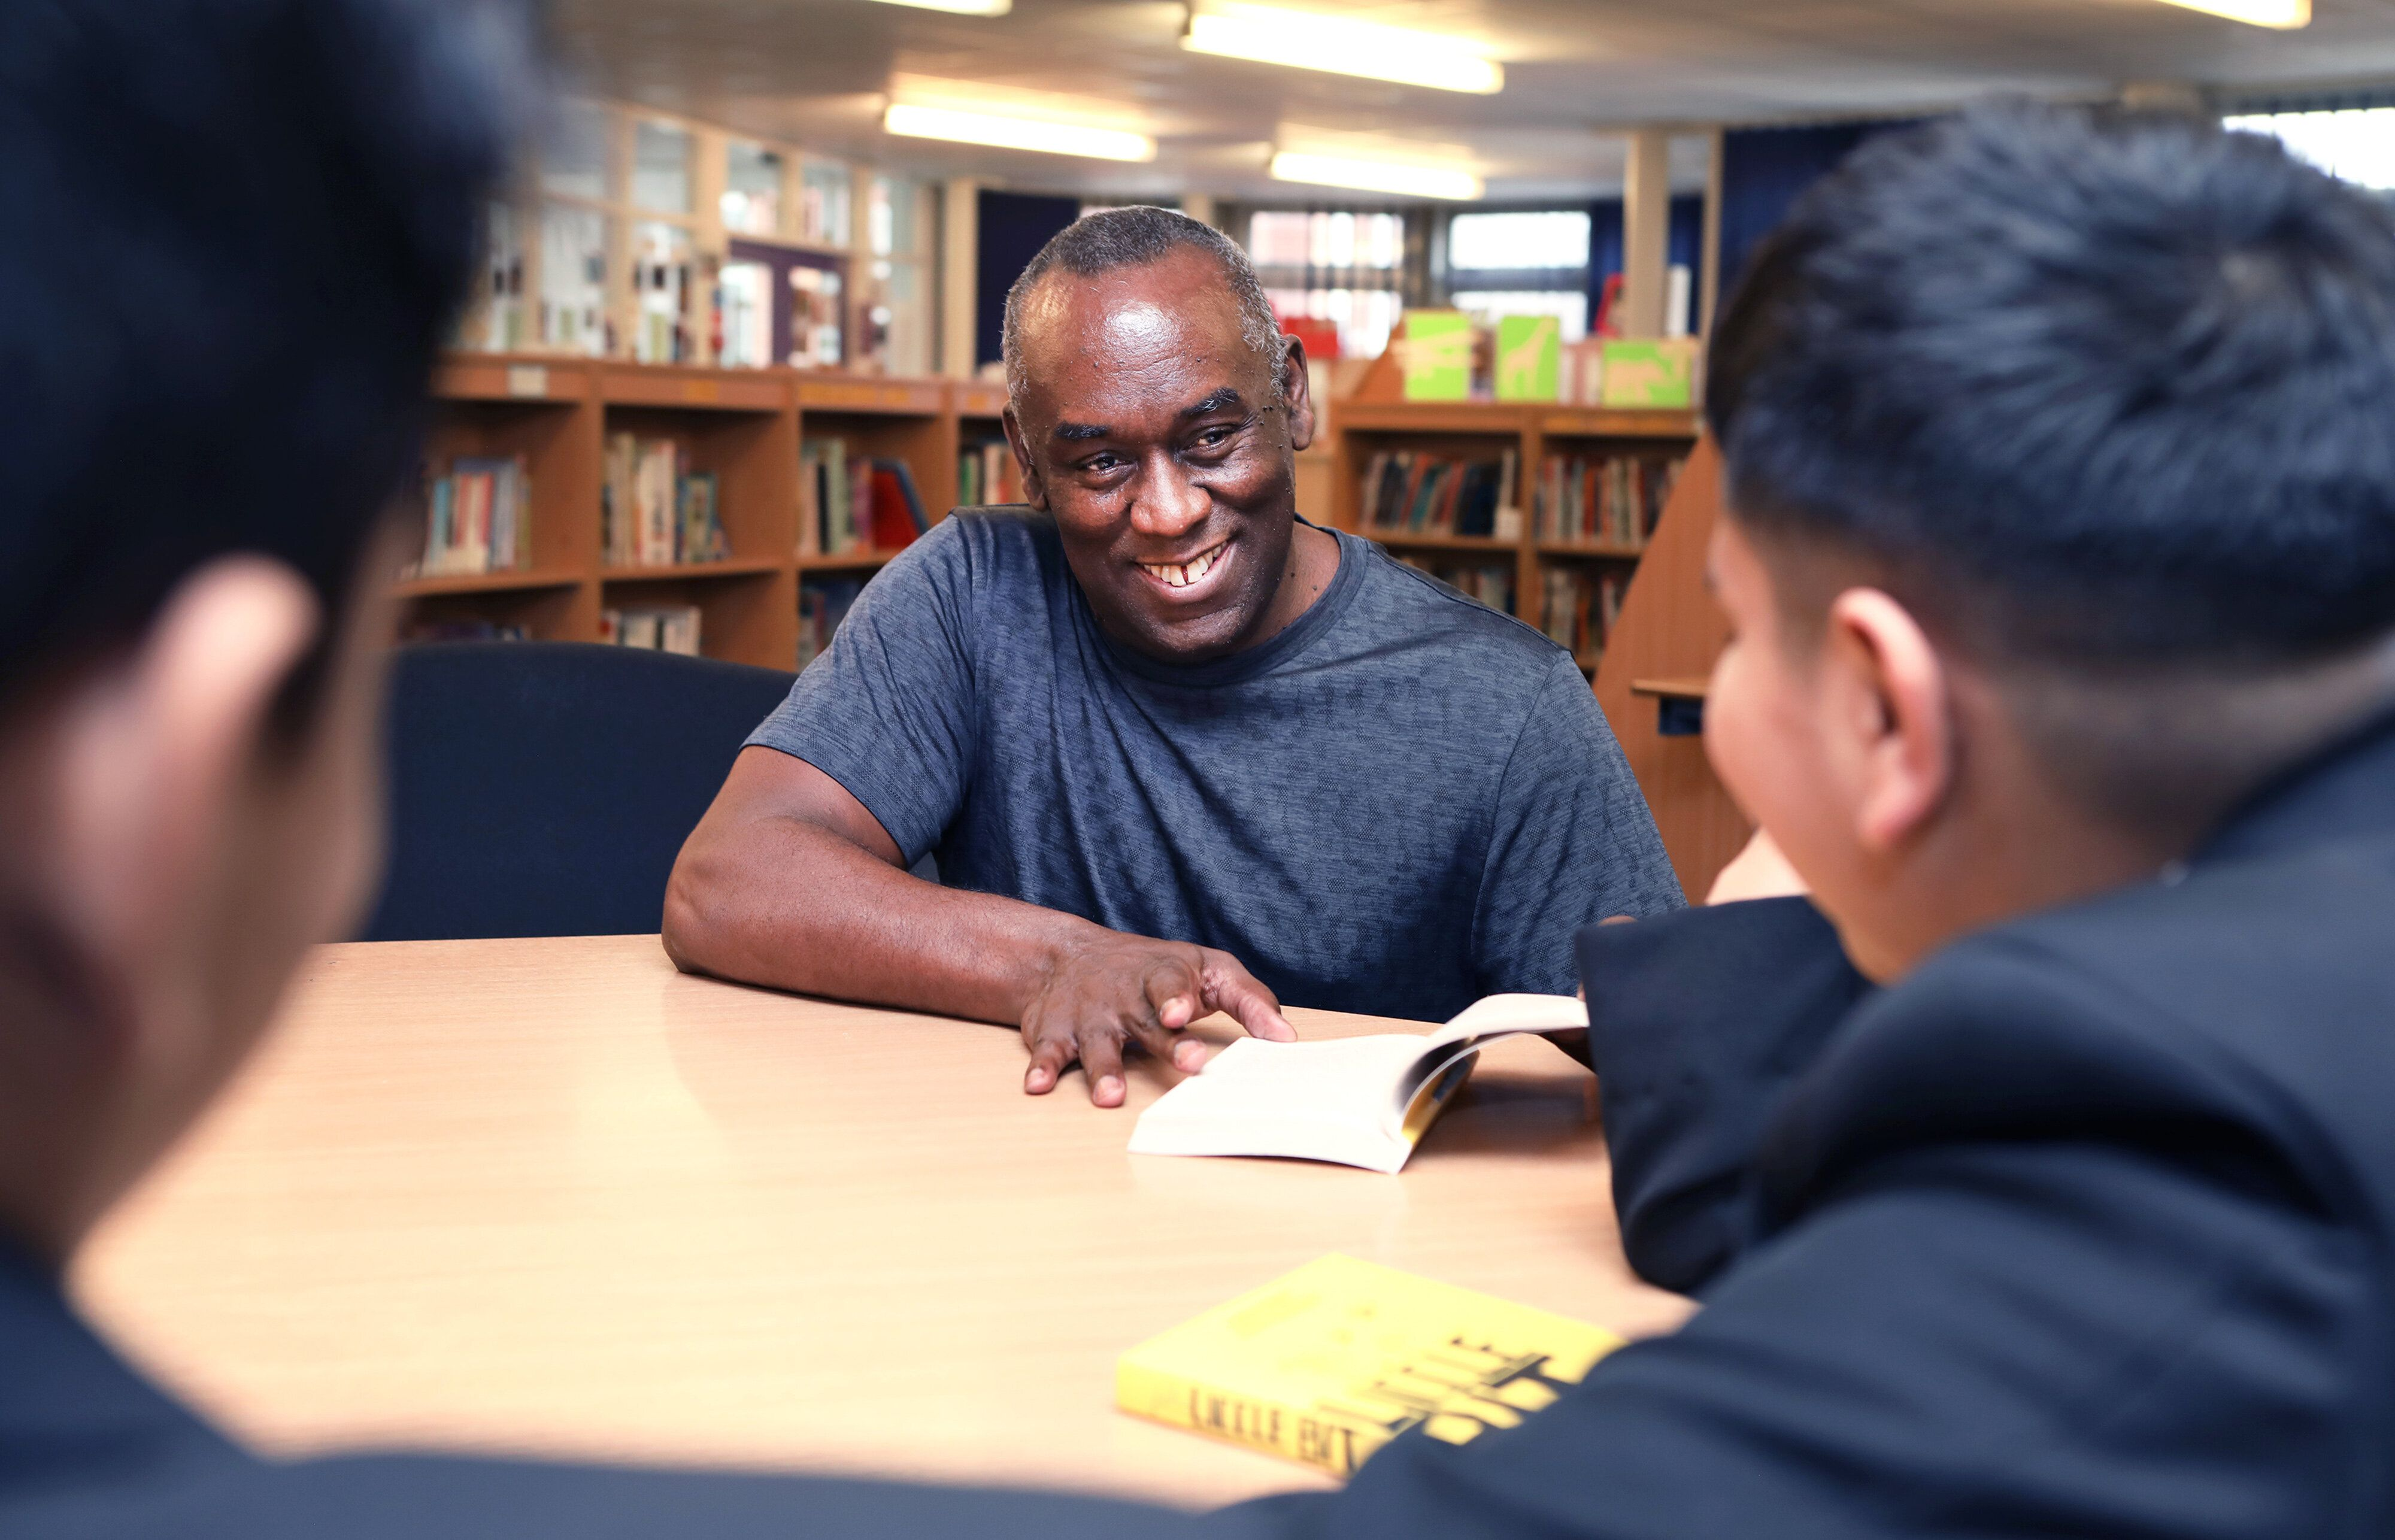 Pupils at Yardleys School in Birmingham meet author Alex Wheatle at a BookTrust event to highlight books by authors and illus